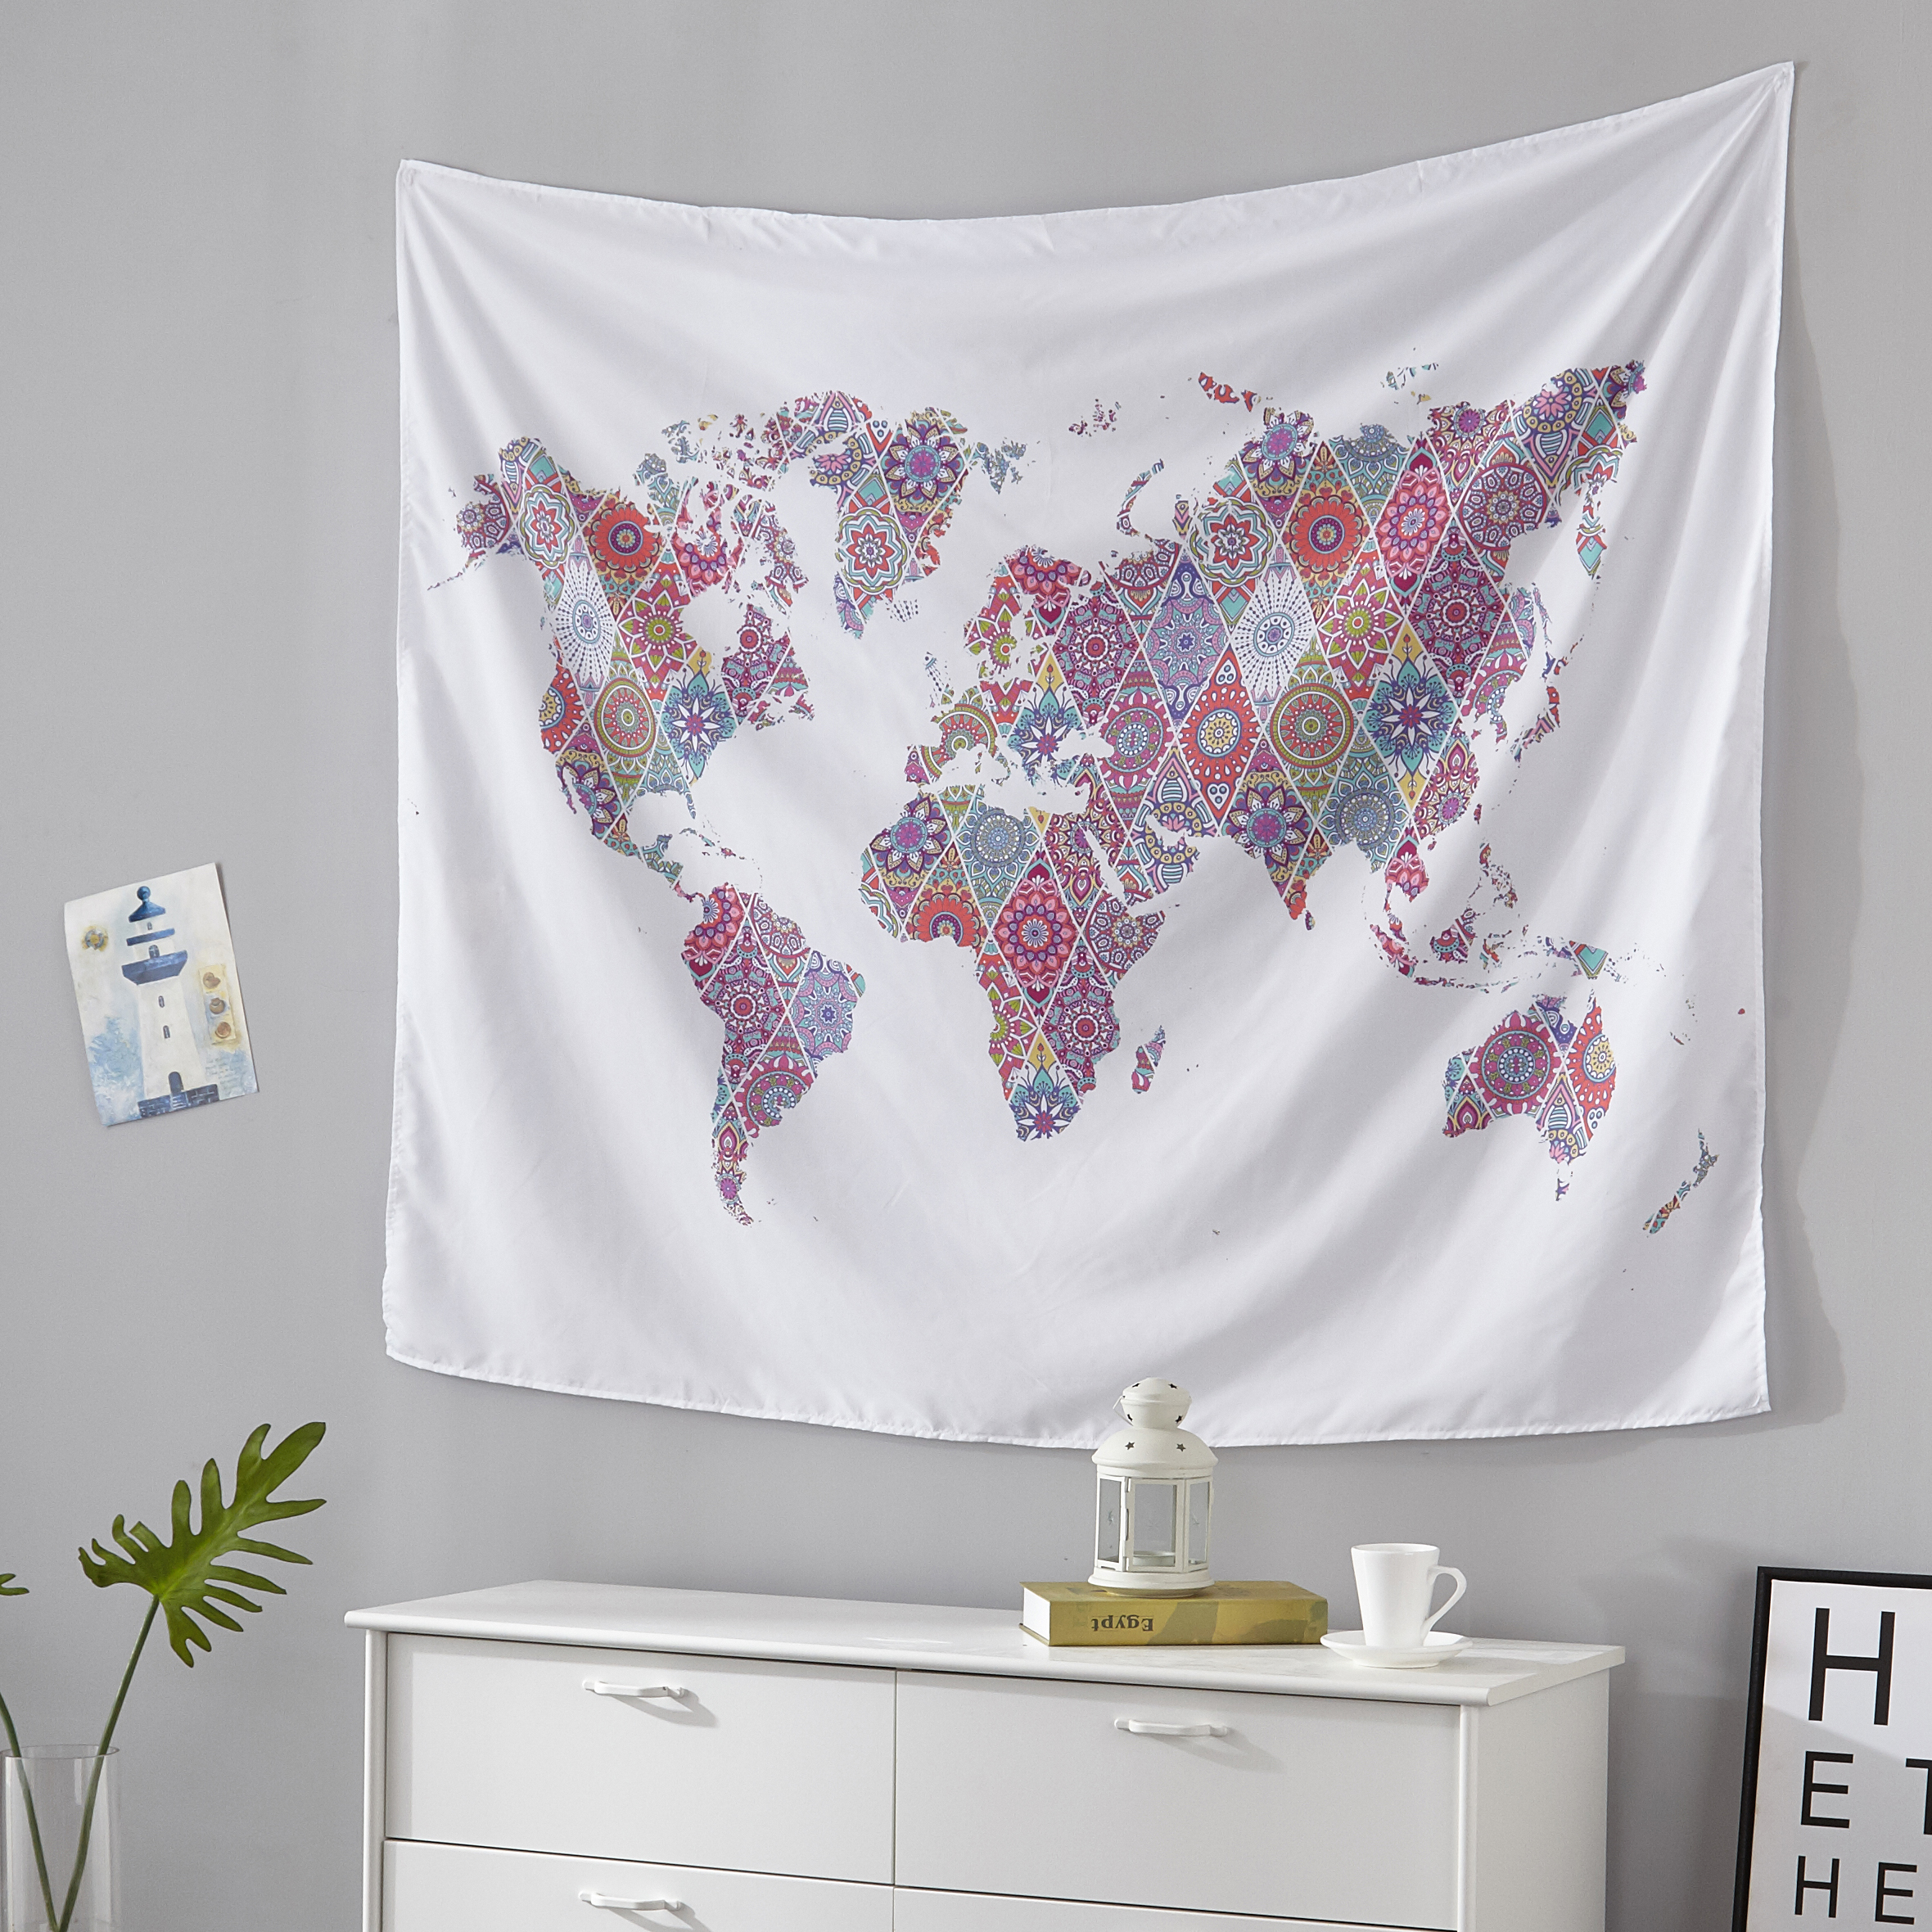 Mainstays Global Pattern Tapestry 50 x 60 in by Idea Nuova